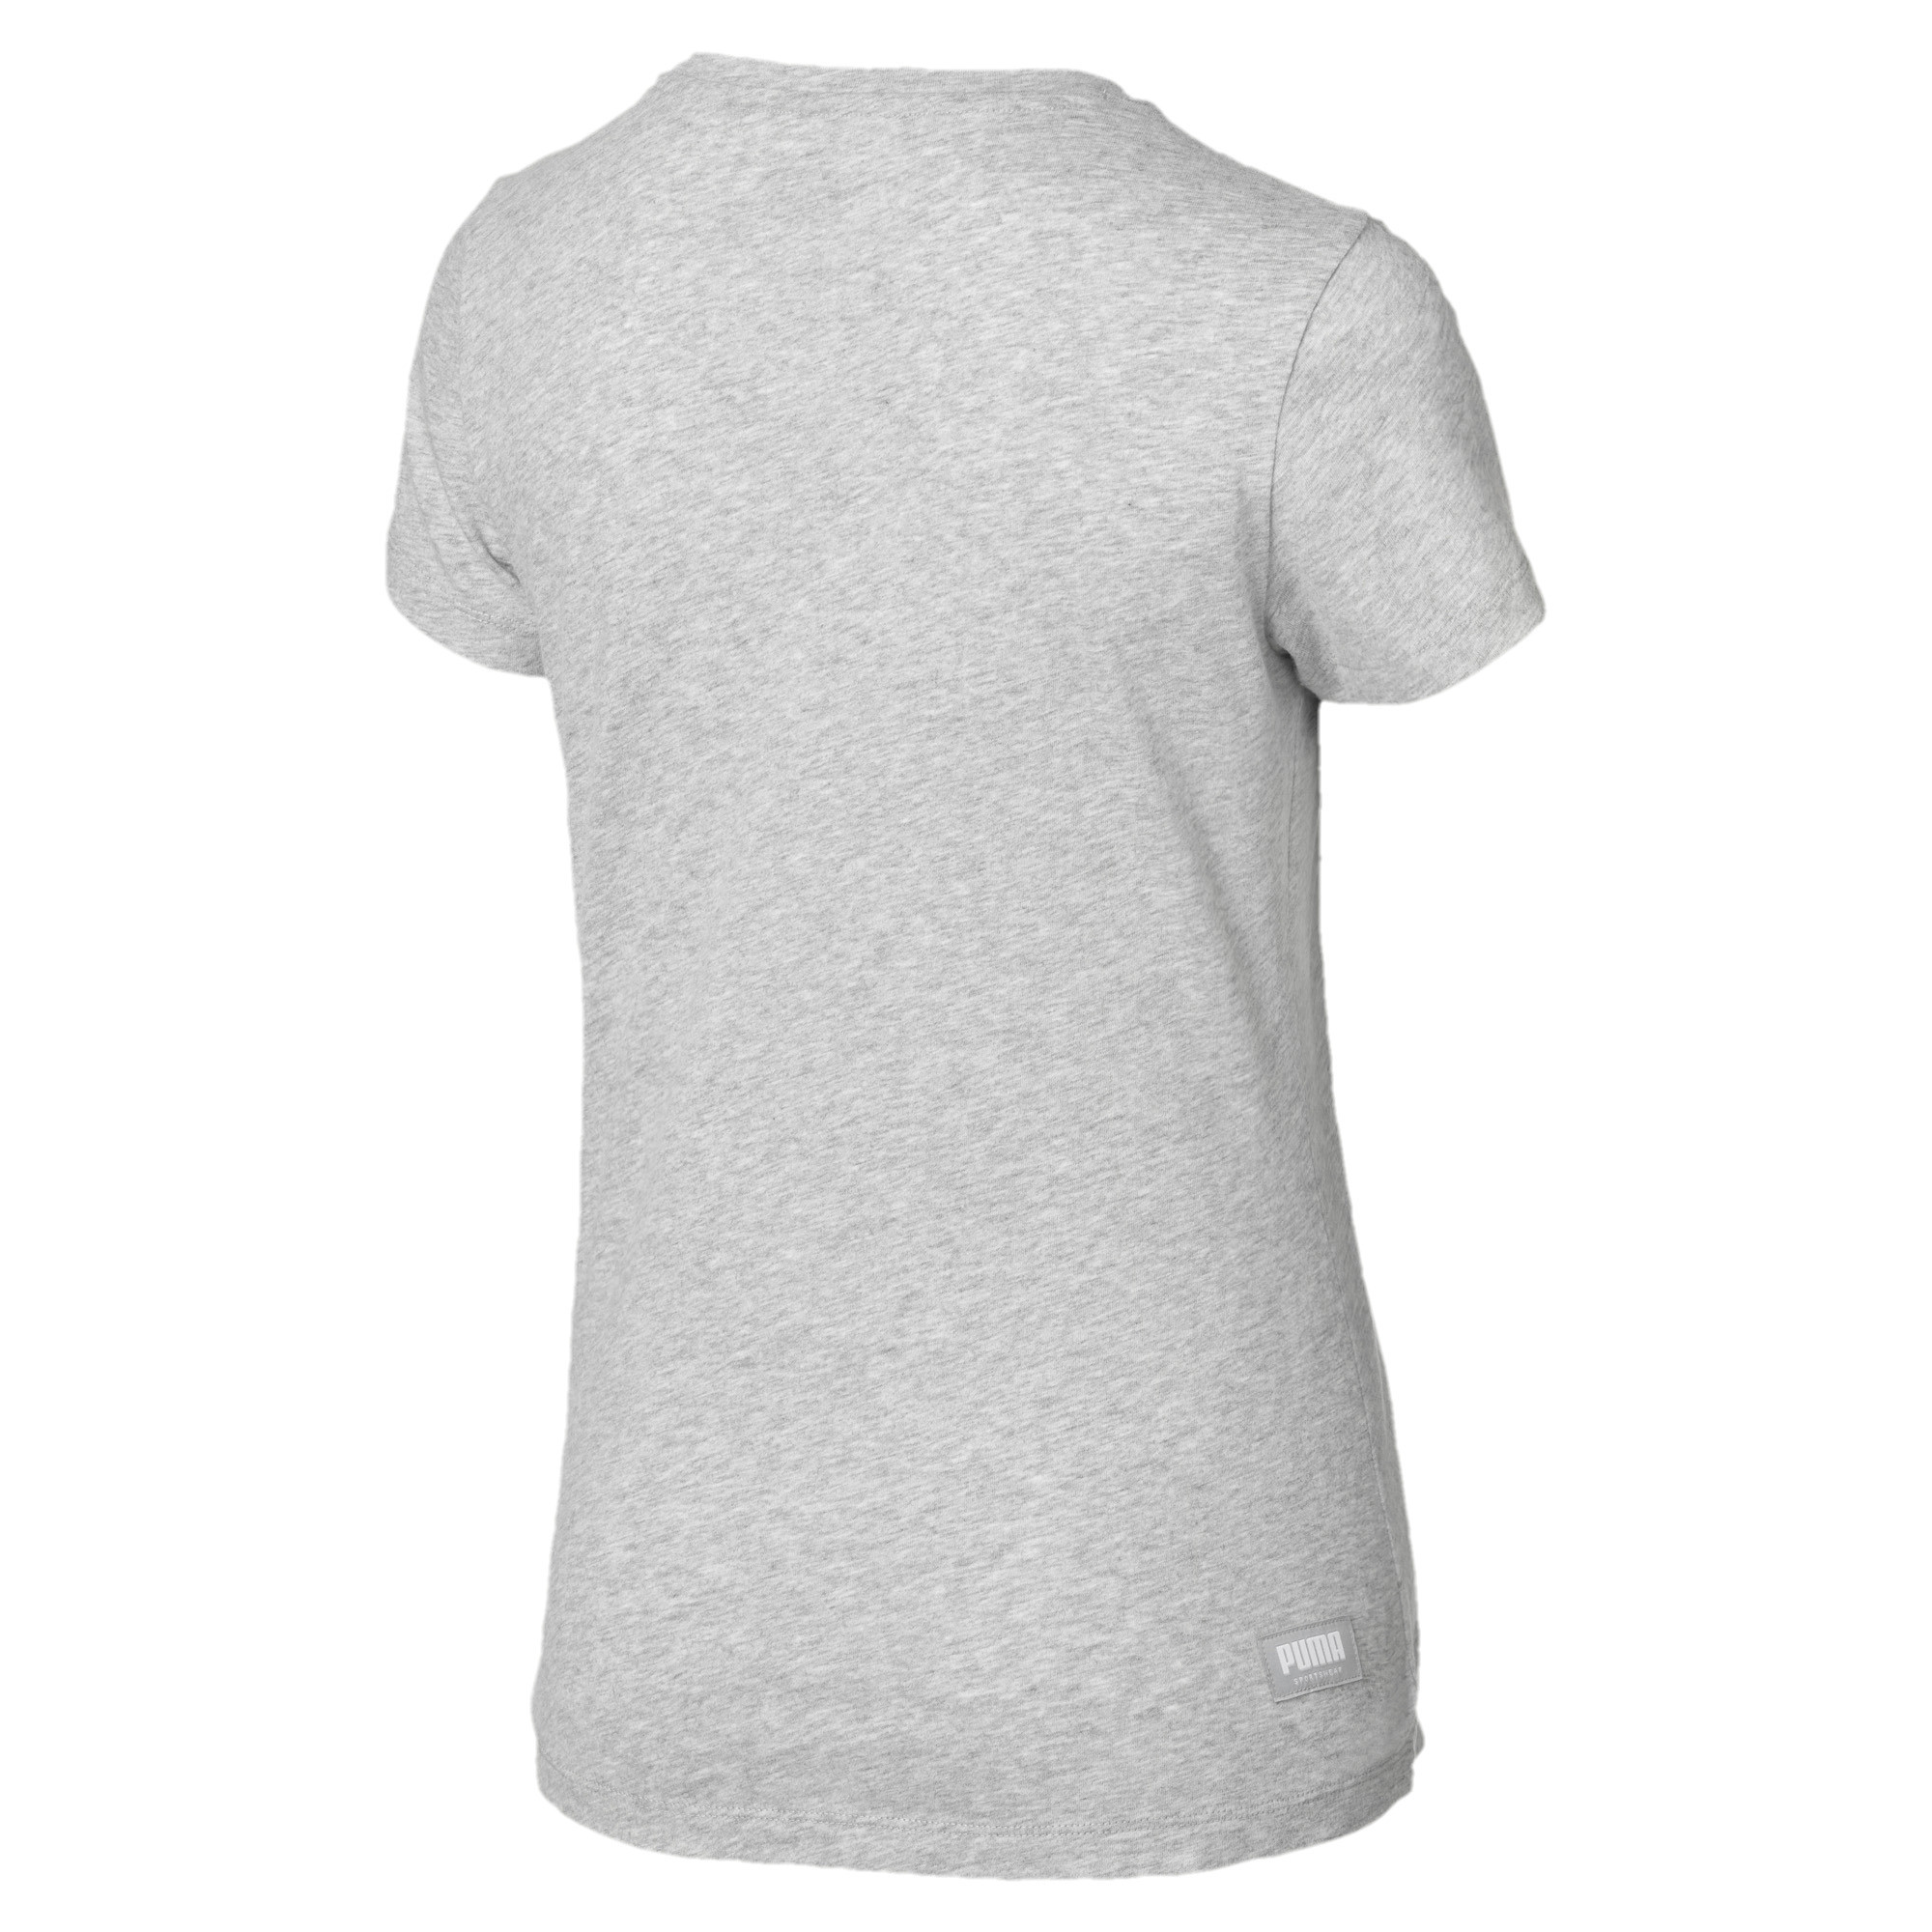 PUMA-Women-039-s-Athletics-Tee thumbnail 10